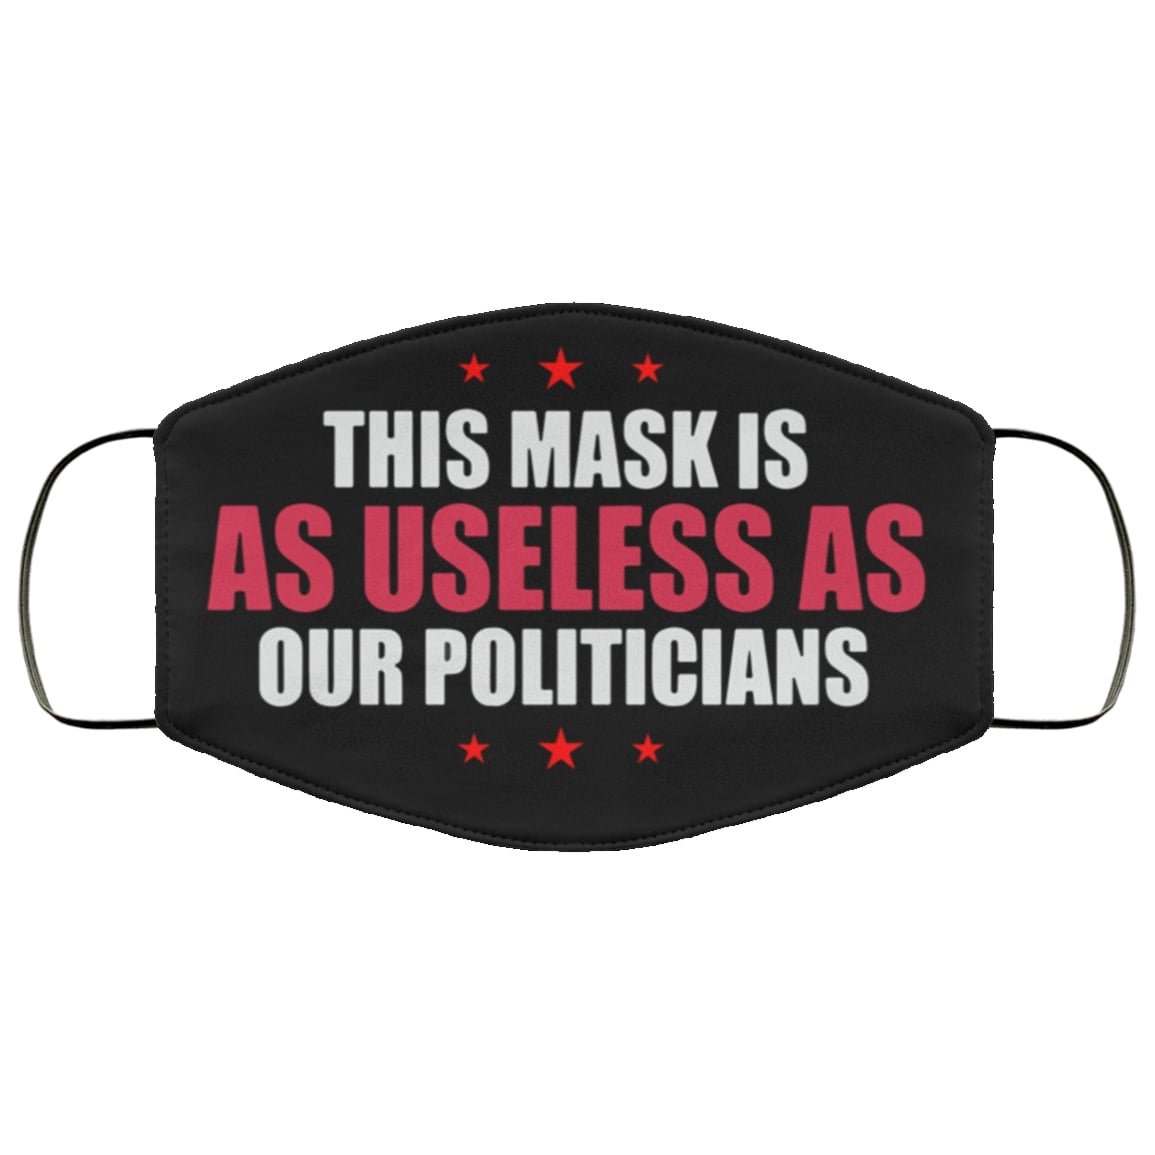 This mask is as useless as our politicians anti pollution face mask 3